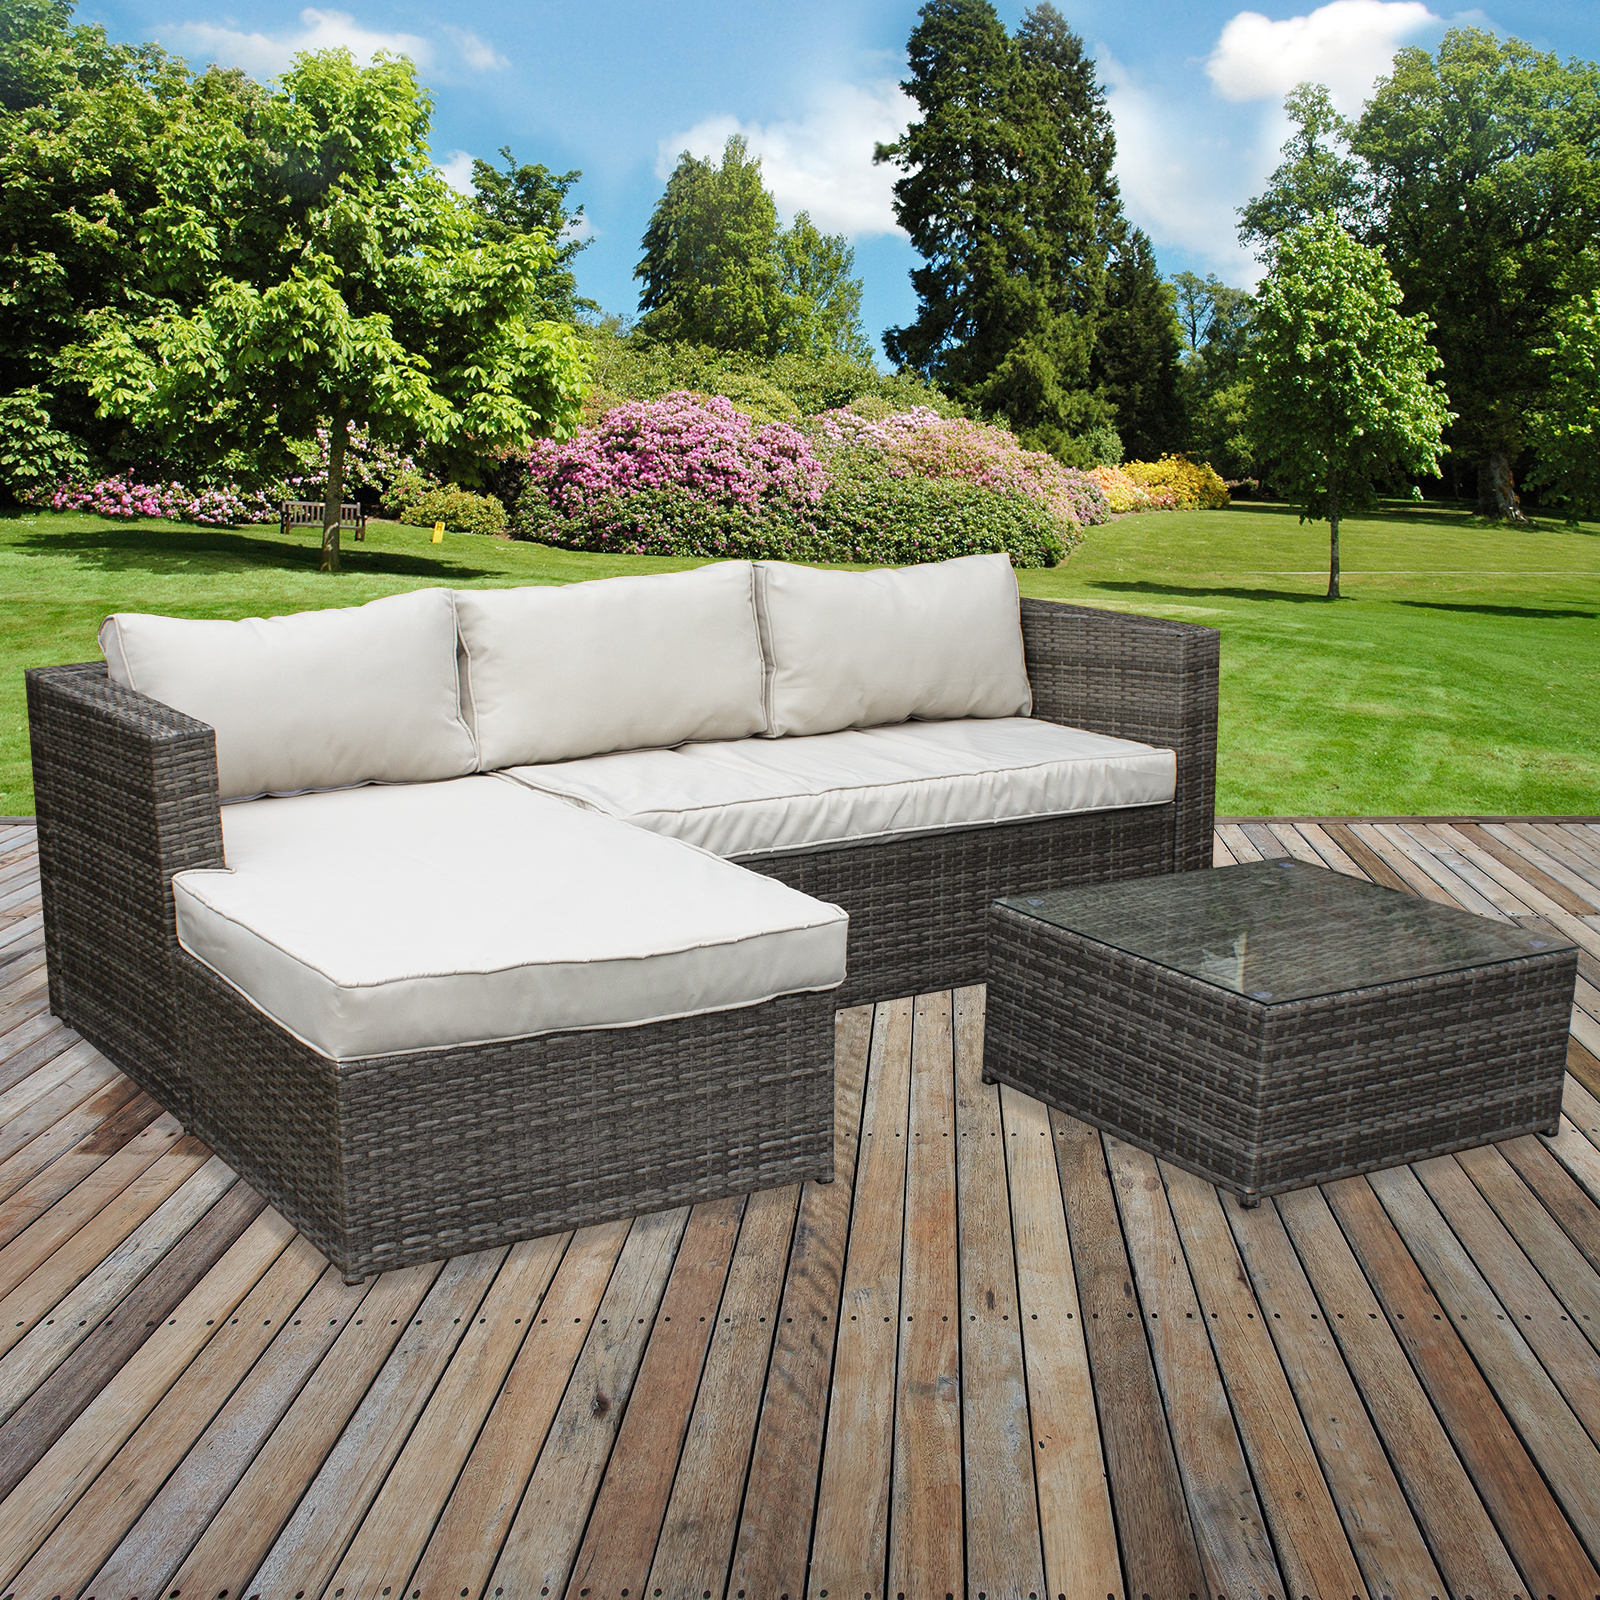 Details about RATTAN SOFA SET GARDEN CORNER L SHAPED OUTDOOR PATIO  FURNITURE SET SEATING TABLE